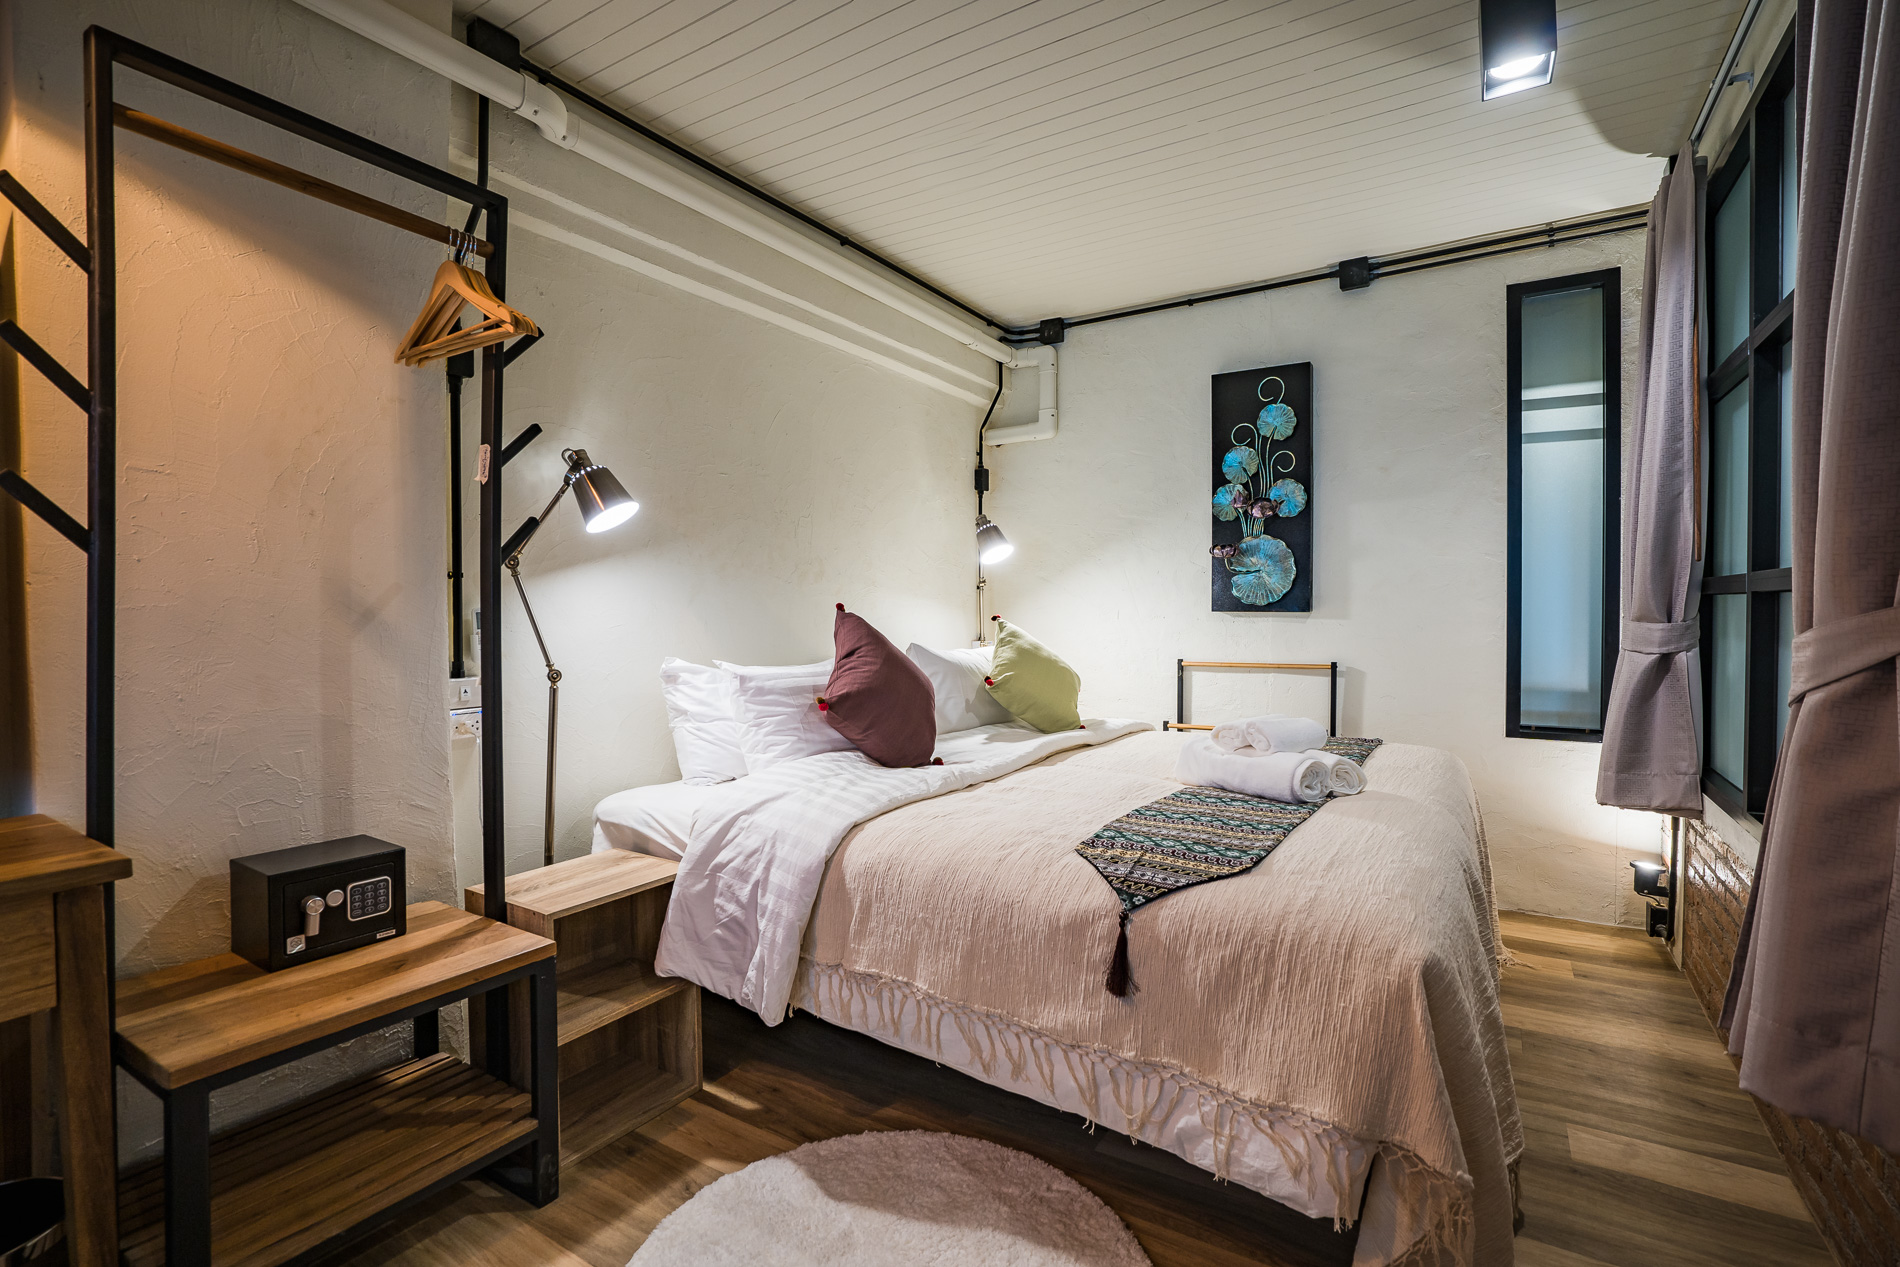 Chiang Mai luxury holiday apartments